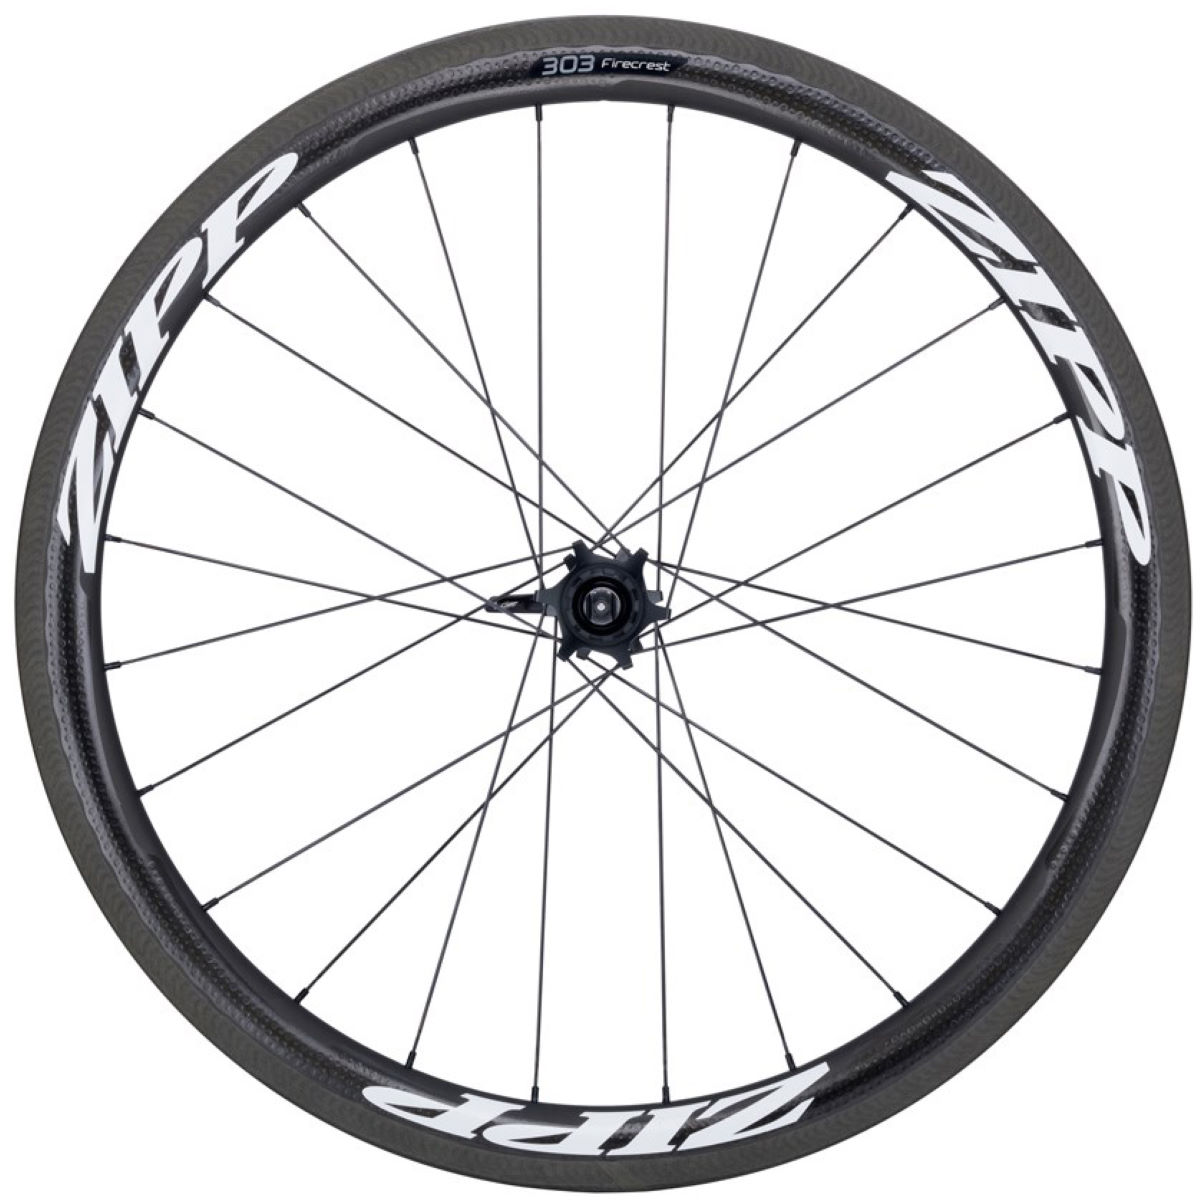 Zipp 303 Carbon Tubular Rear Wheel (700c QR 10x130mm) - Ruedas traseras